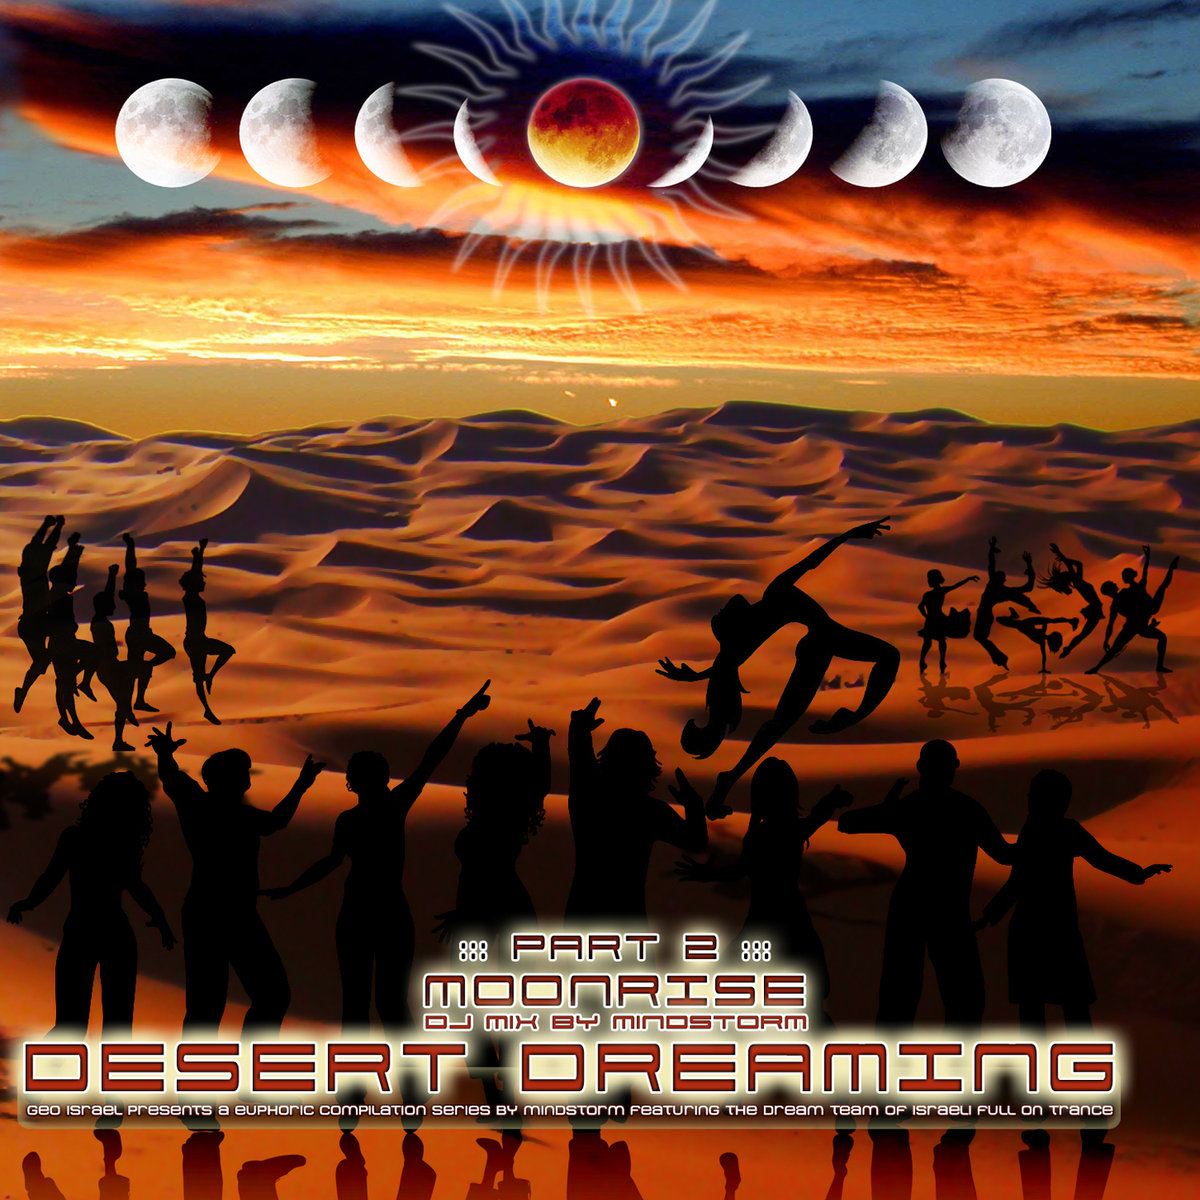 Mixed Emotions - Getting Up @ 'Various Artists - Desert Dreaming Part 2: Moonrise (DJ Mix by Mindstorm)' album (electronic, goa)